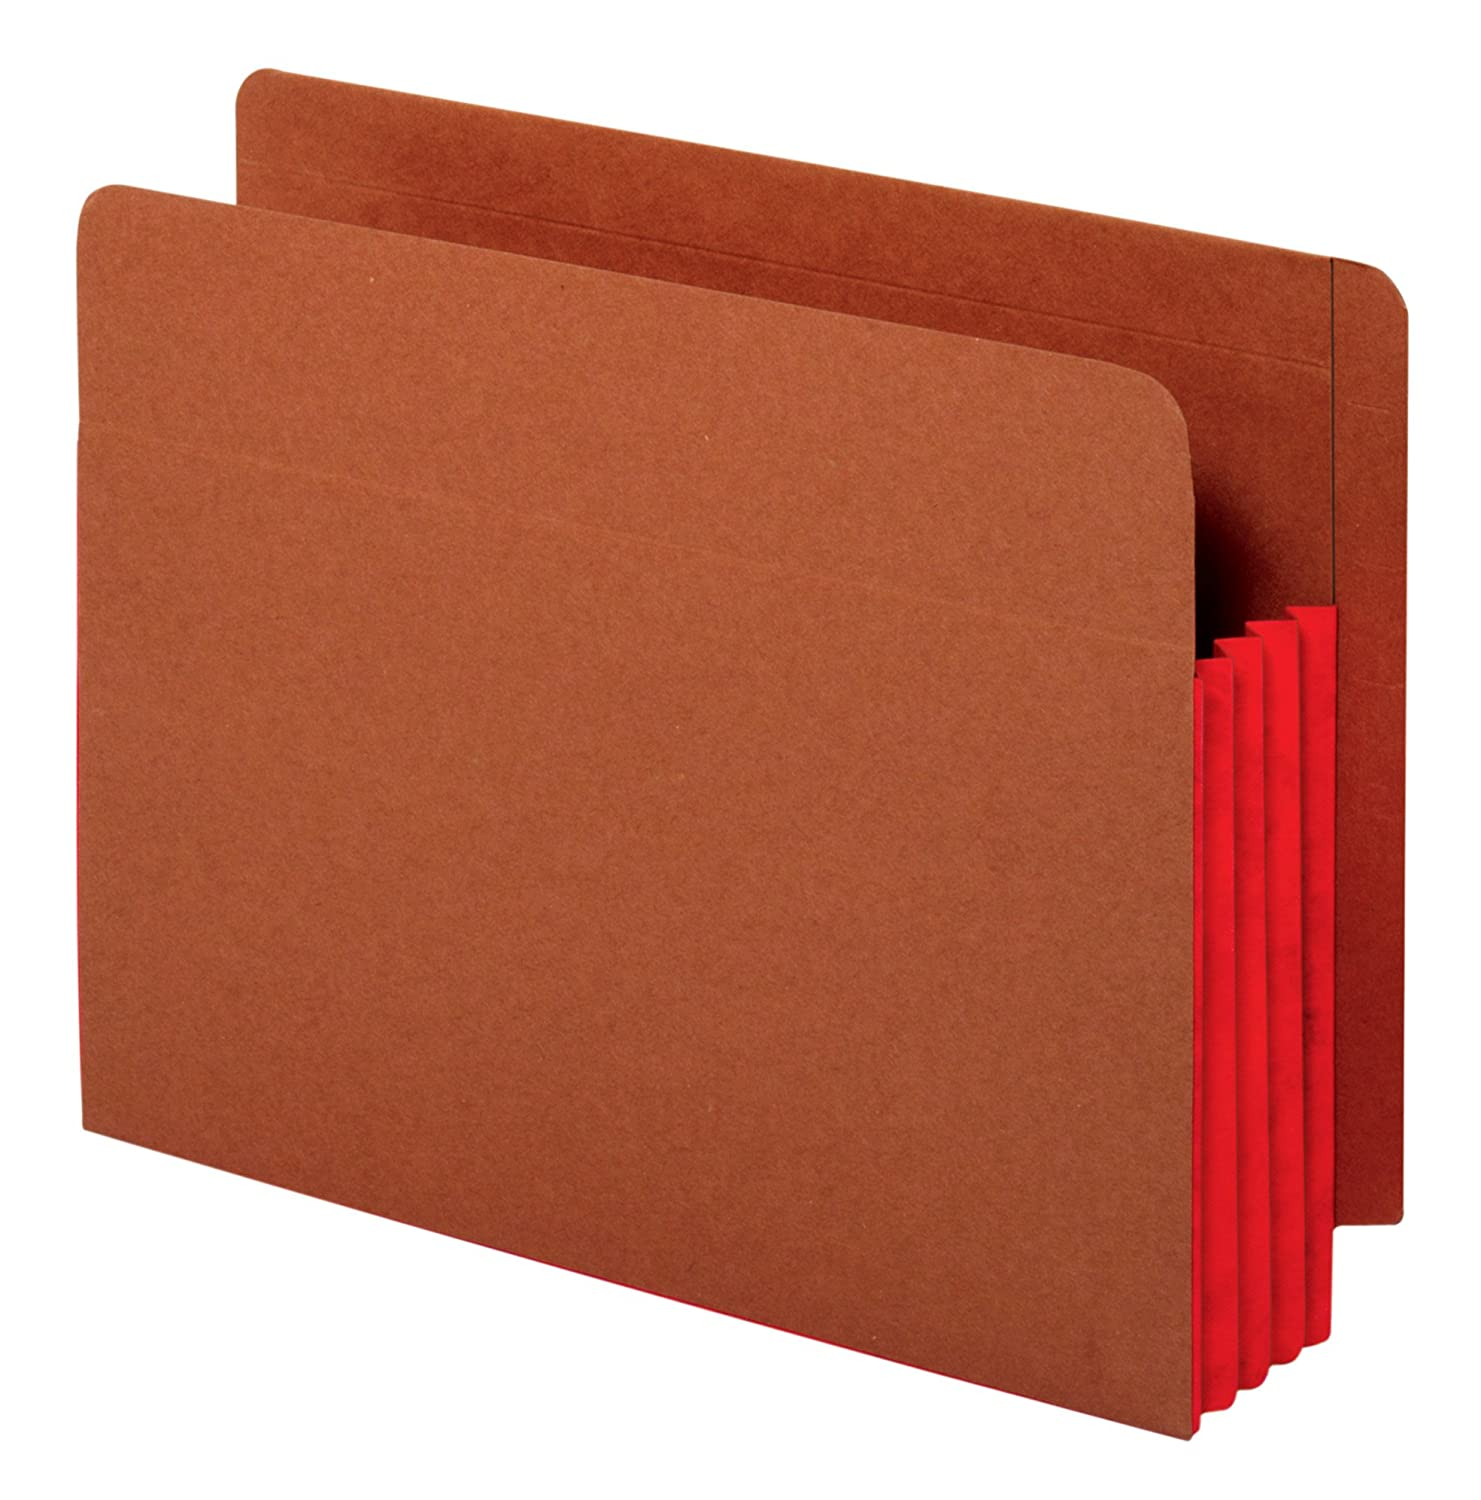 Globe-Weis End Tab File Pockets, 3.5-Inch Expansion, Red Tyvek Gusset, Brown Cover, Letter Size, 10 Per Box (63686)